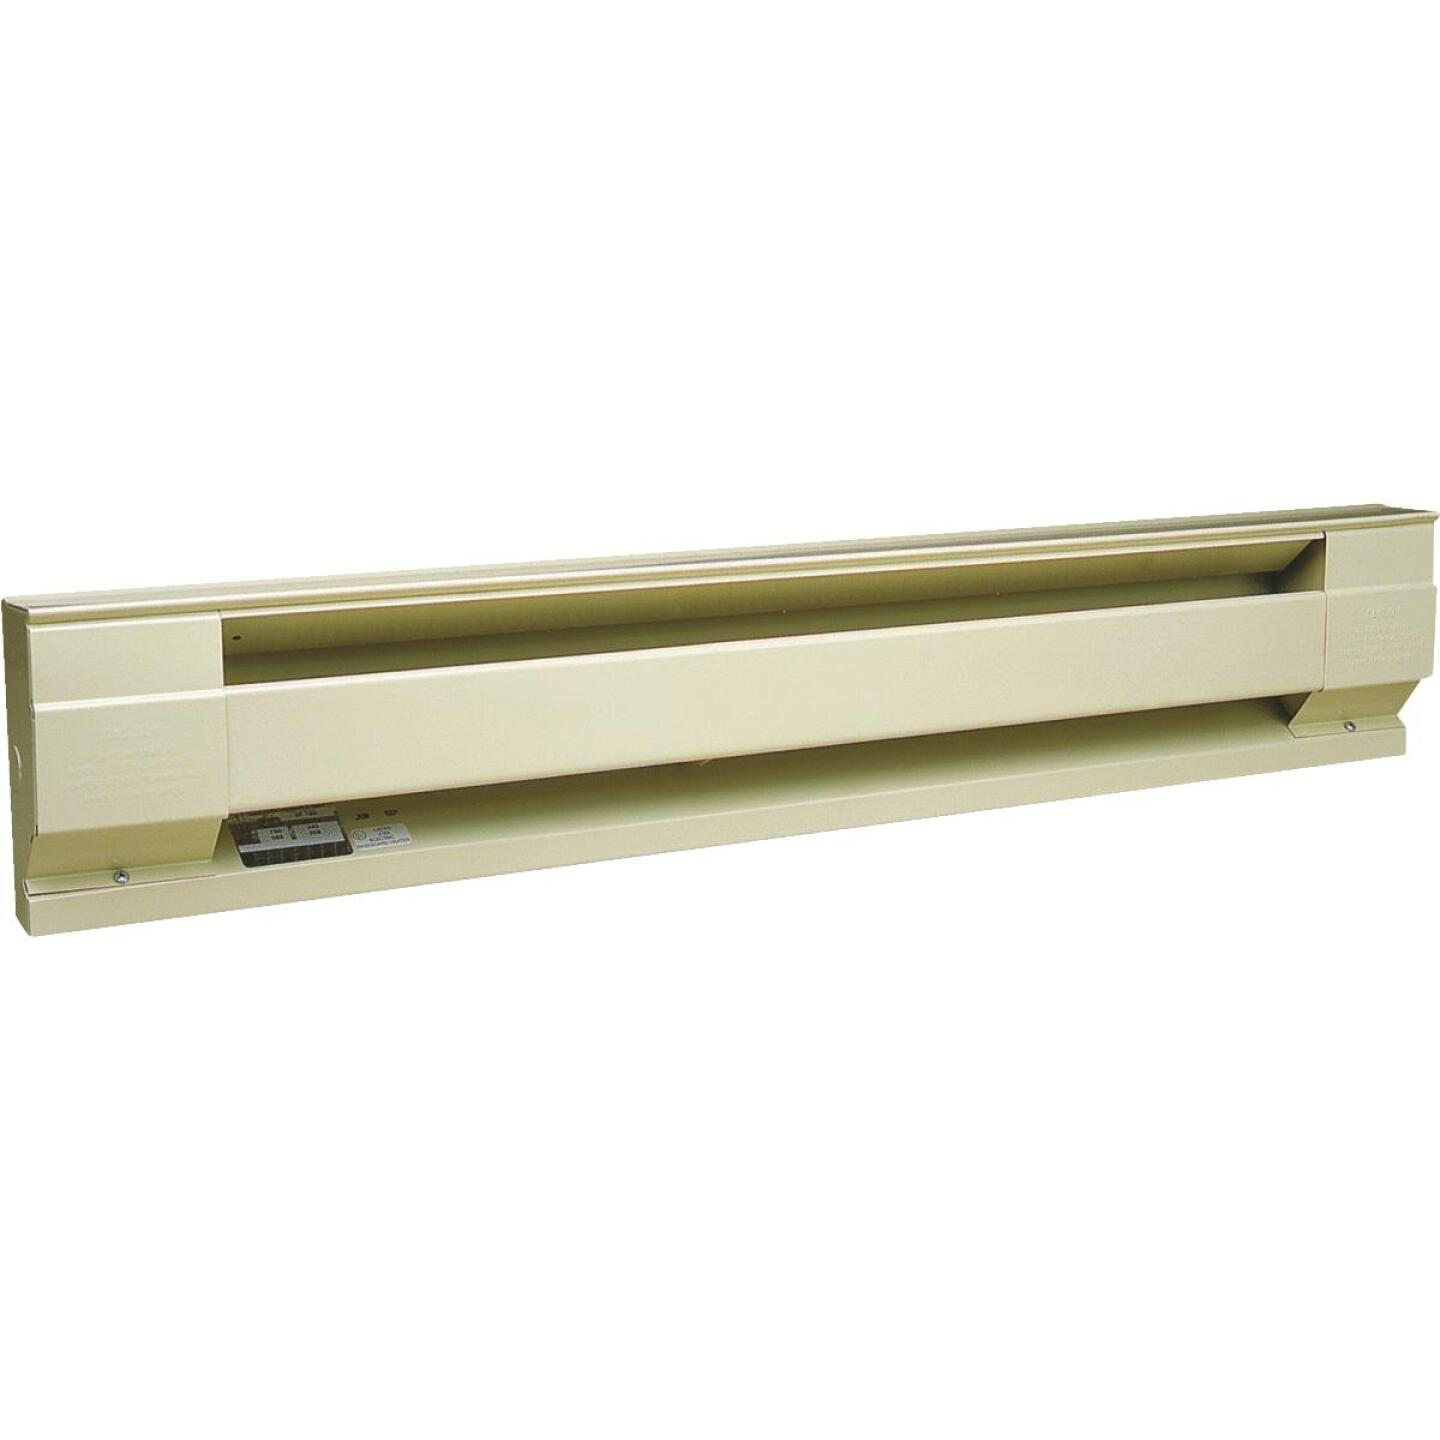 Cadet 72 In. 1500-Watt 240-Volt Electric Baseboard Heater, Almond Image 1